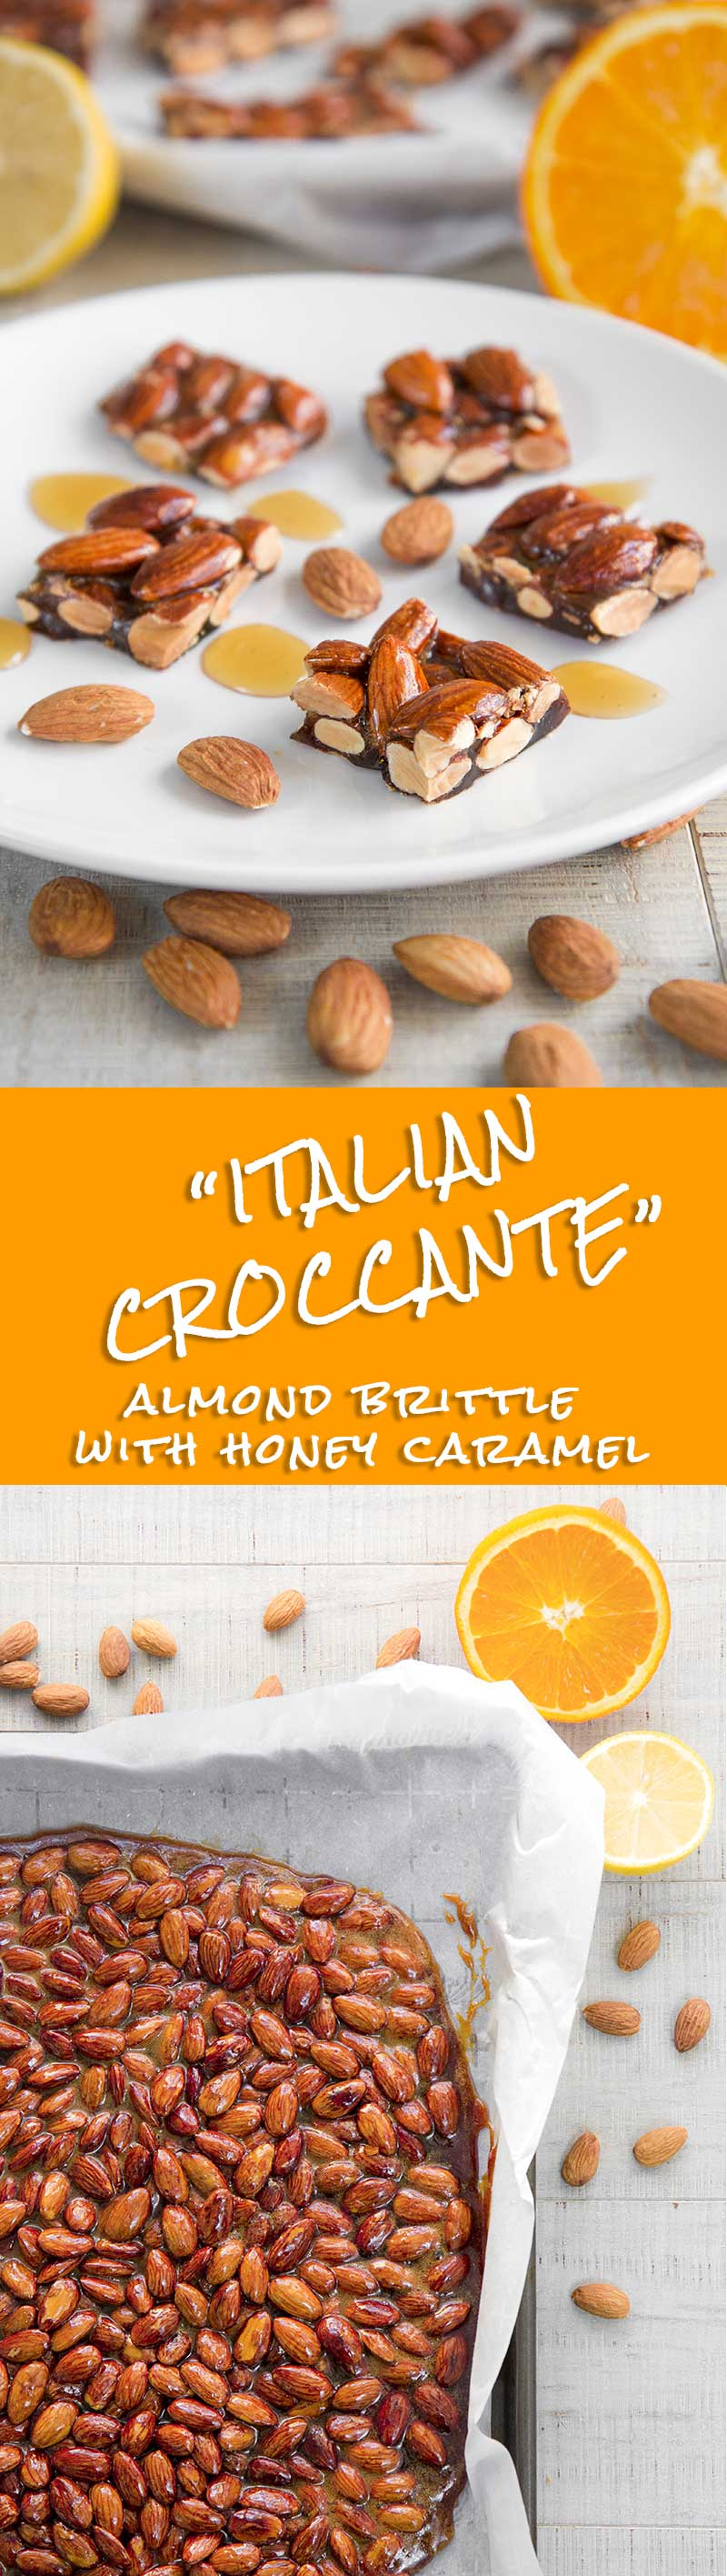 ITALIAN CROCCANTE -caramelized almond brittle bars recipe